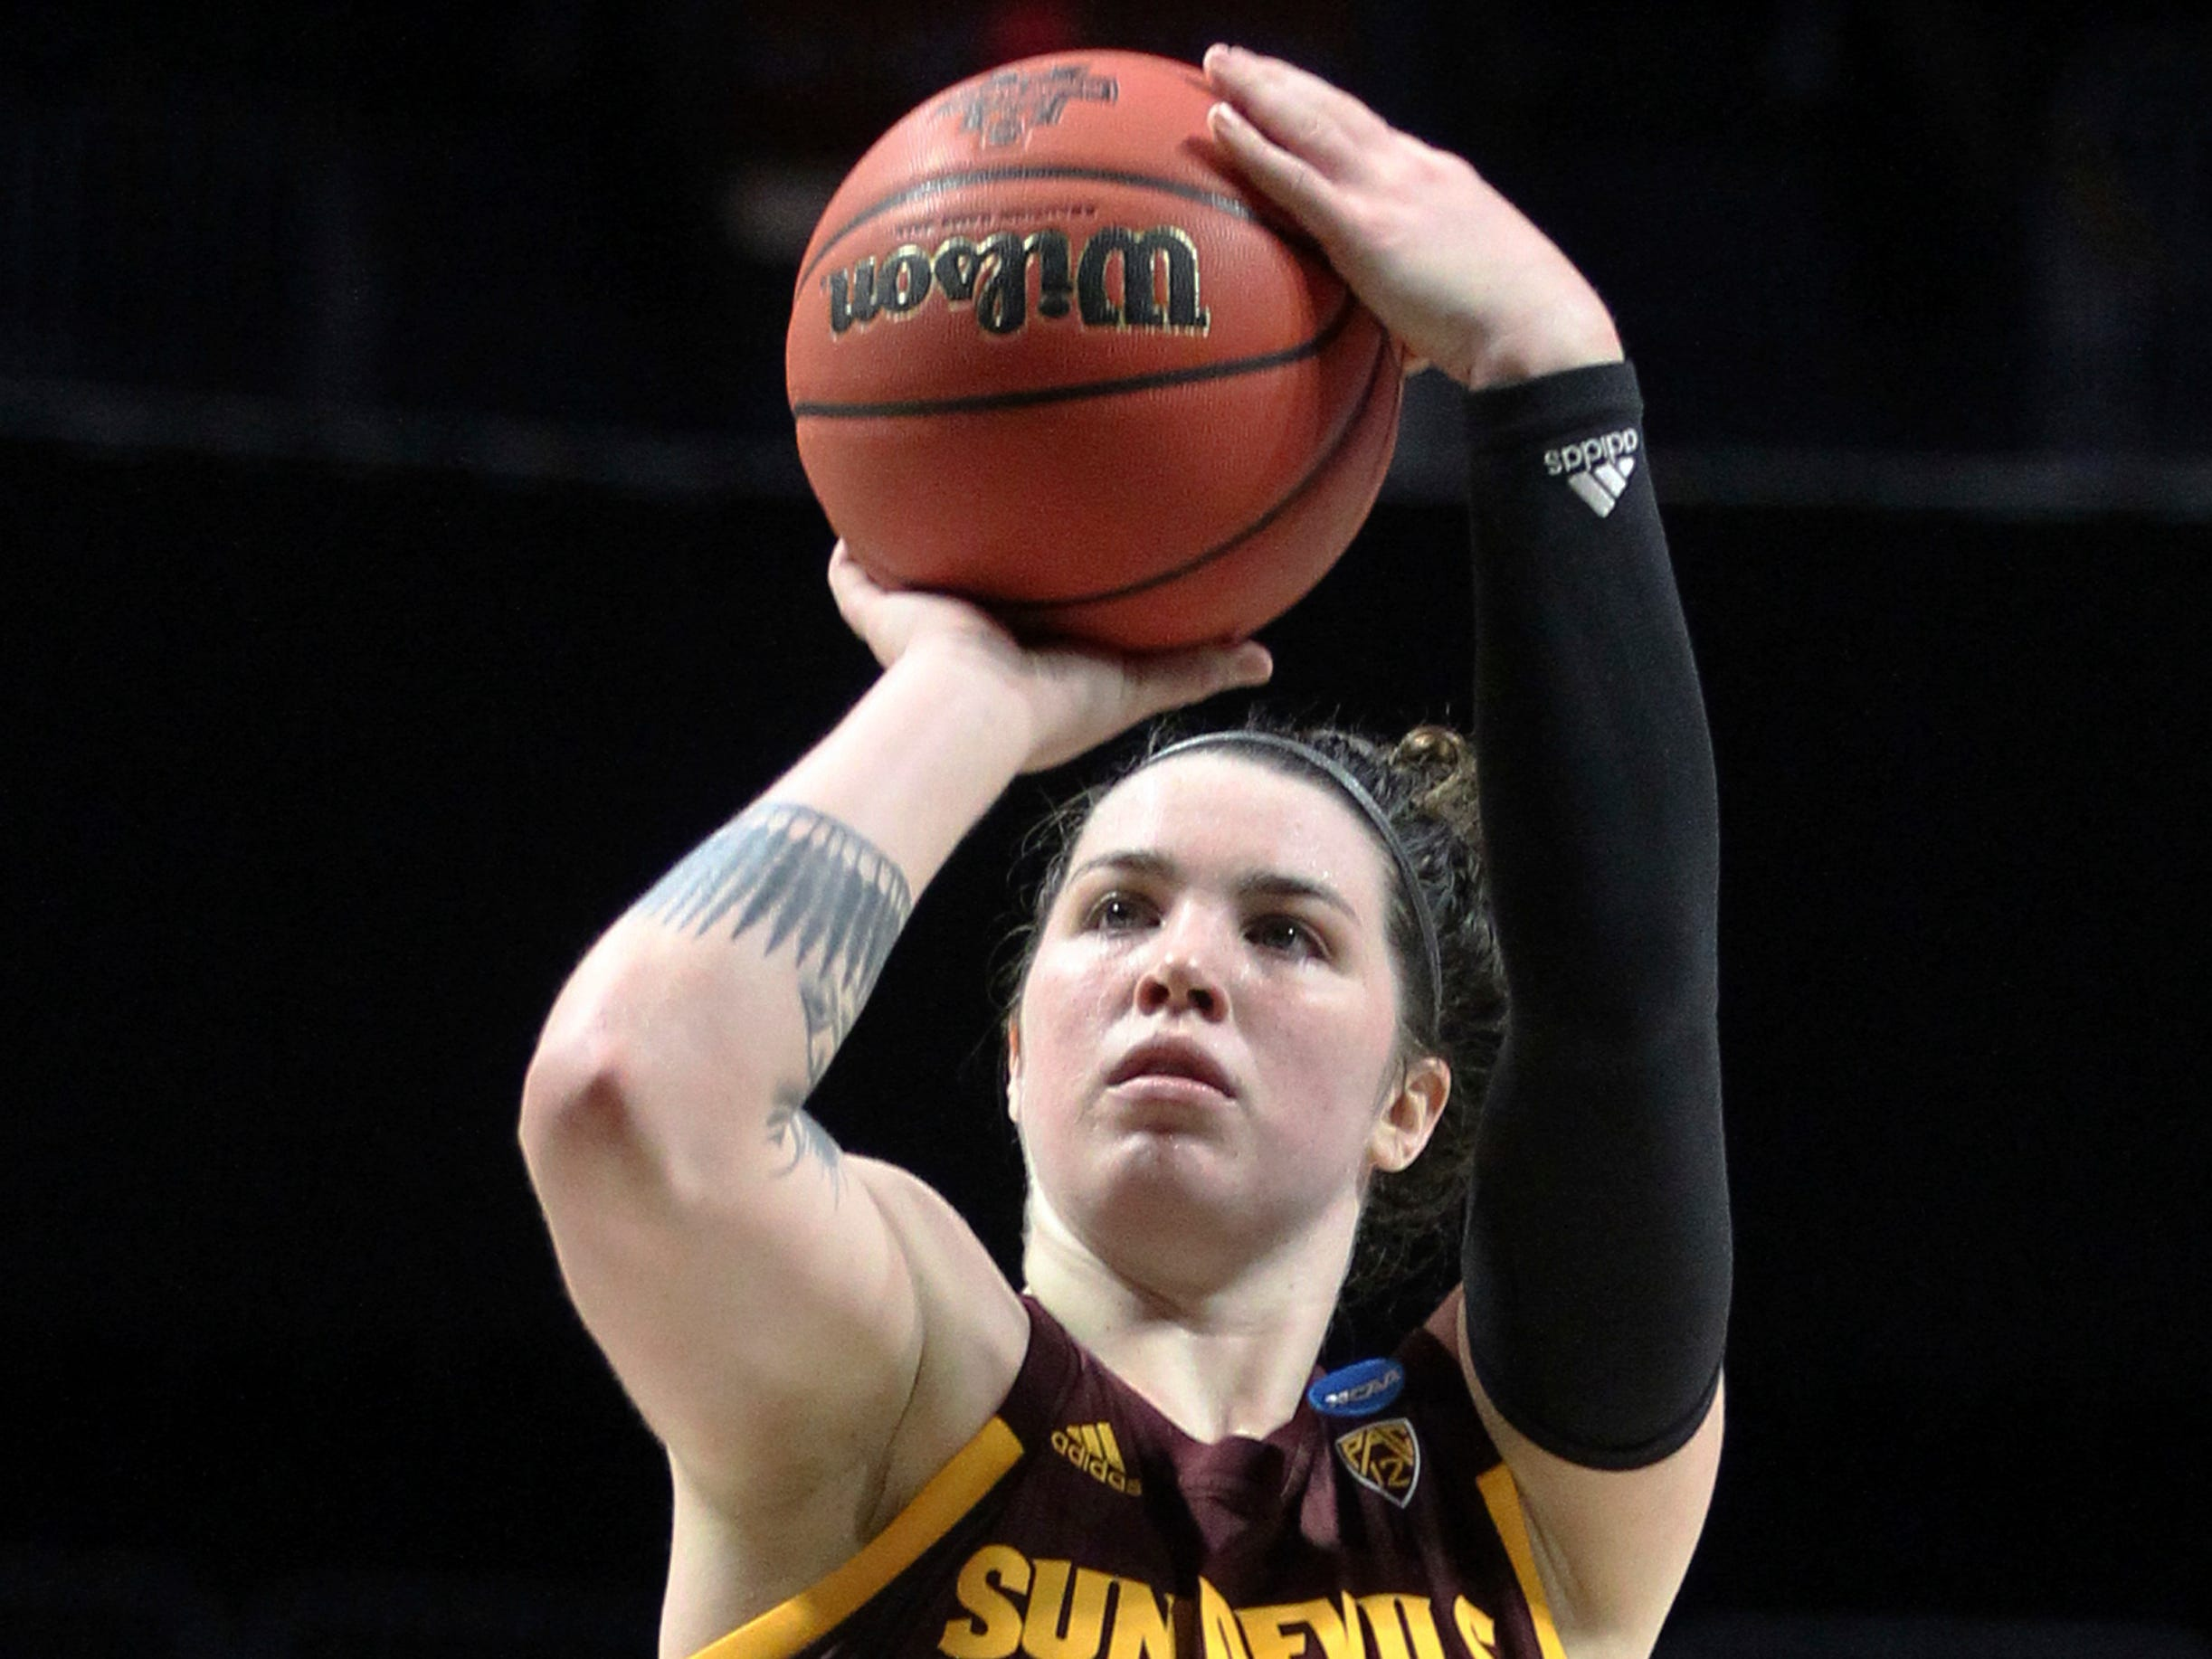 Arizona State's Robbi Ryan shoots her second free throw after being fouled by Miami's Emese Hof late in the second-round women's college basketball game in the NCAA Tournament, Sunday, March 24, 2019, in Coral Gables, Fla. Arizona State won 57-55. (AP Photo/Luis M. Alvarez)